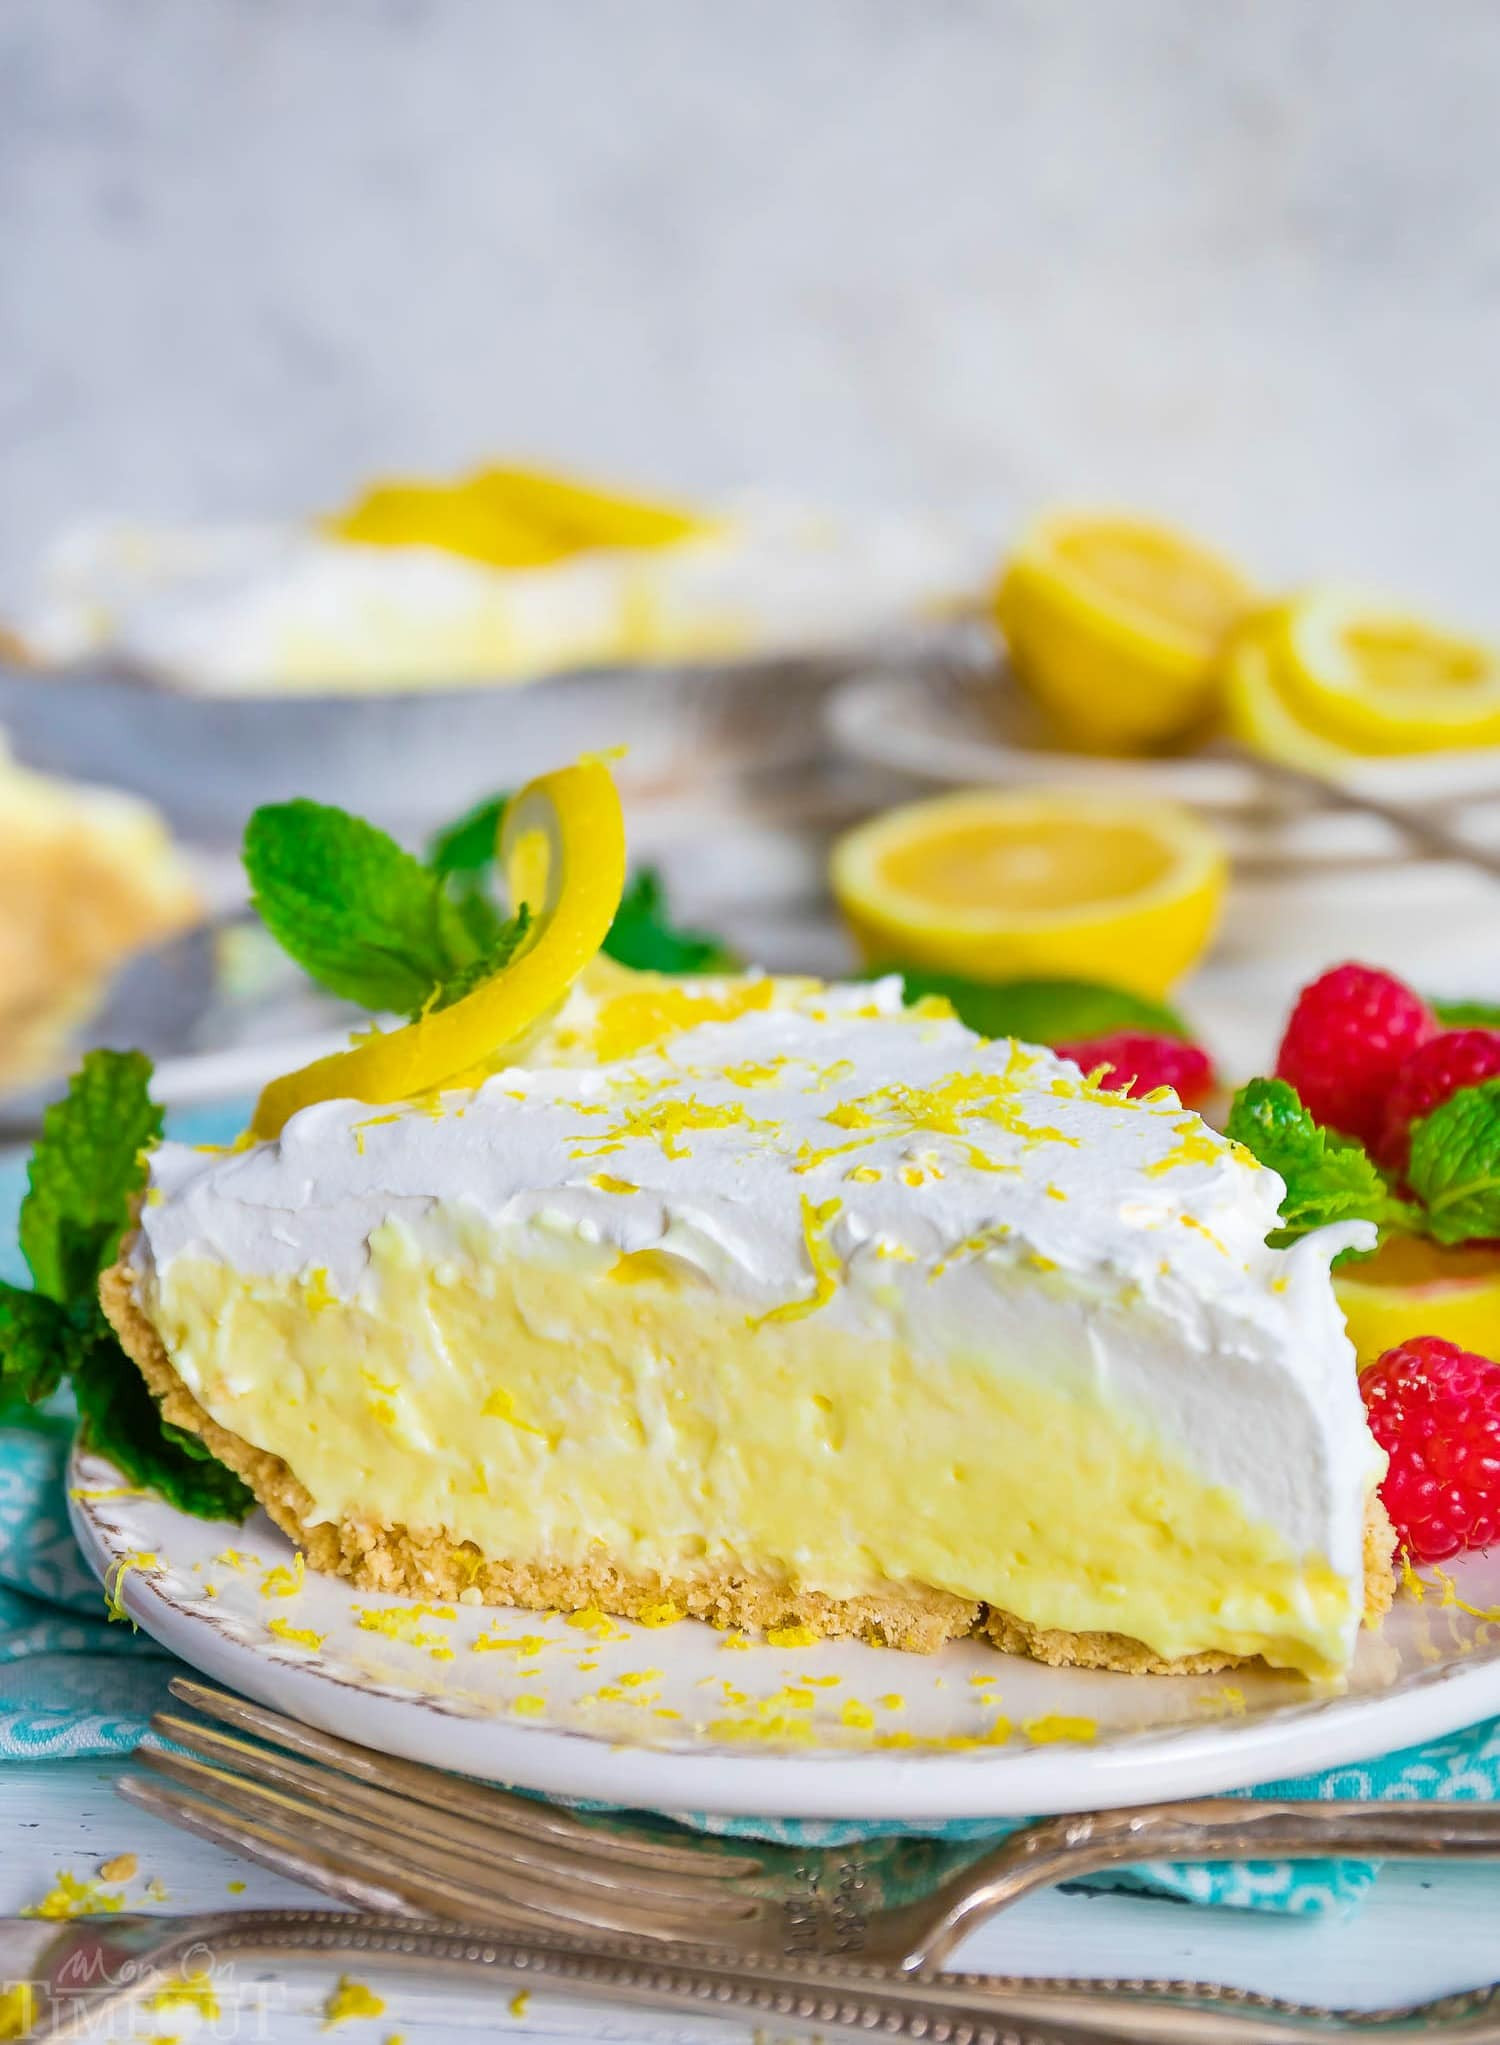 clean slice of creamy lemon pie served on a white plate.